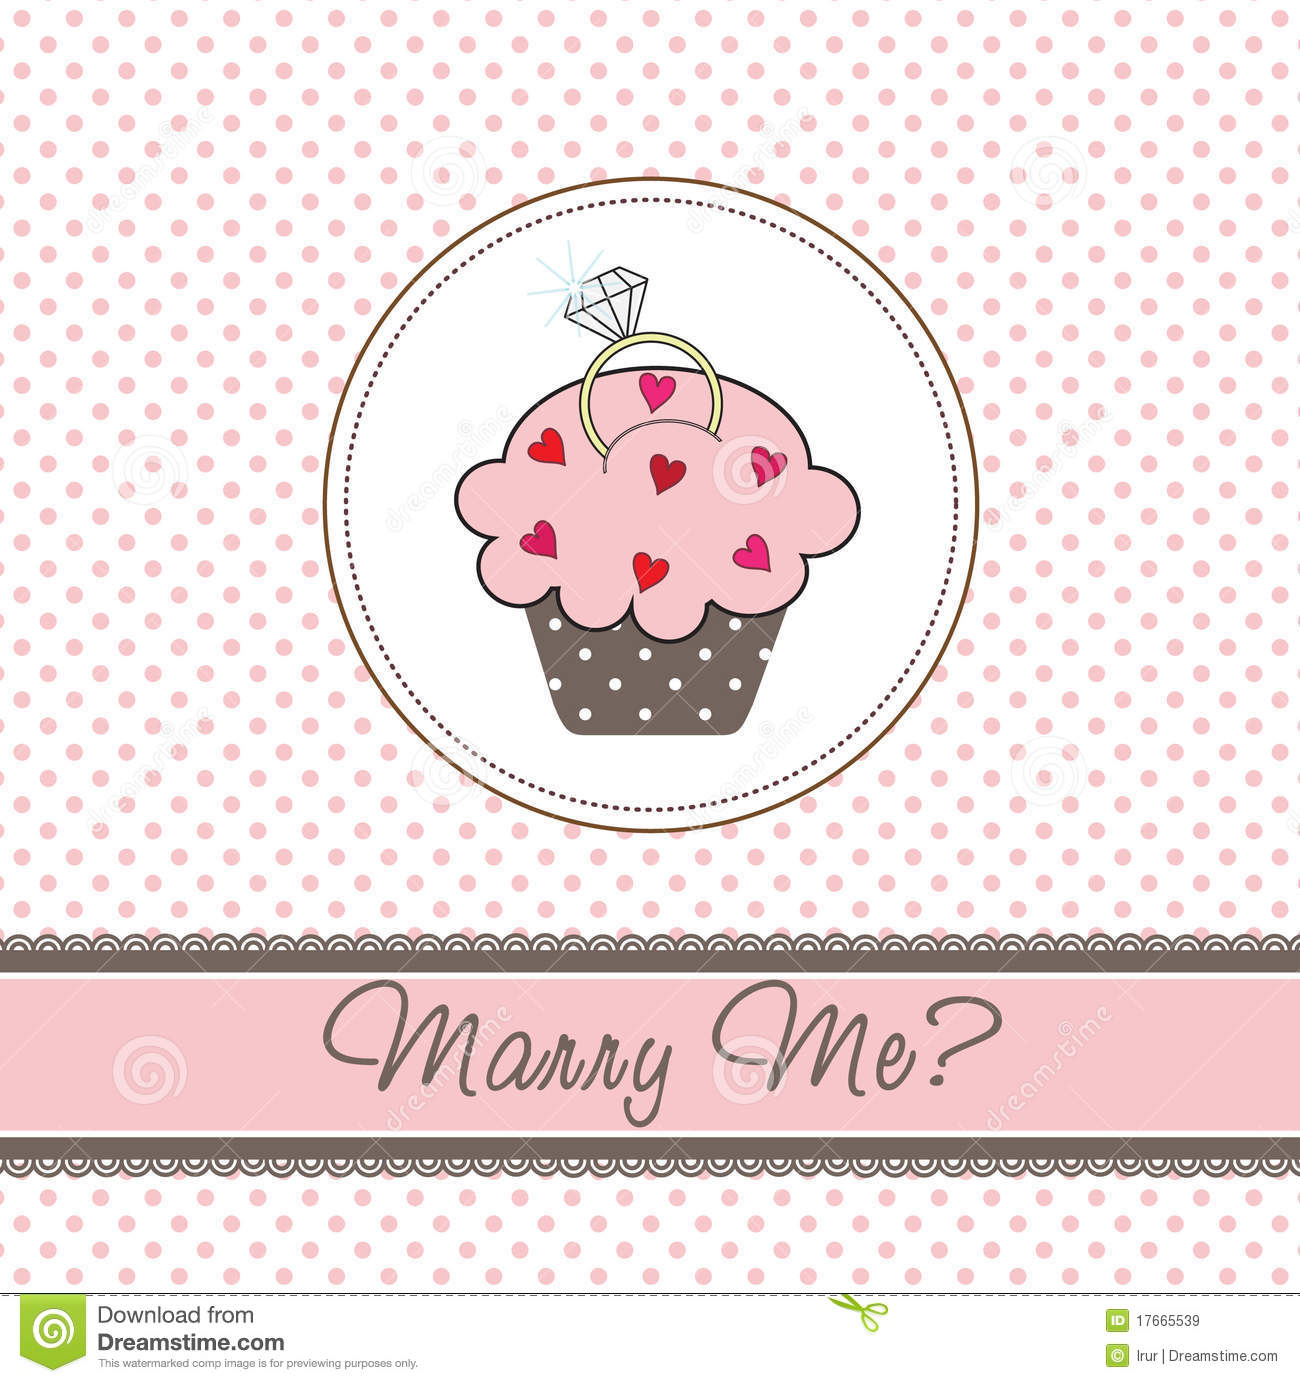 Wedding cupcake card